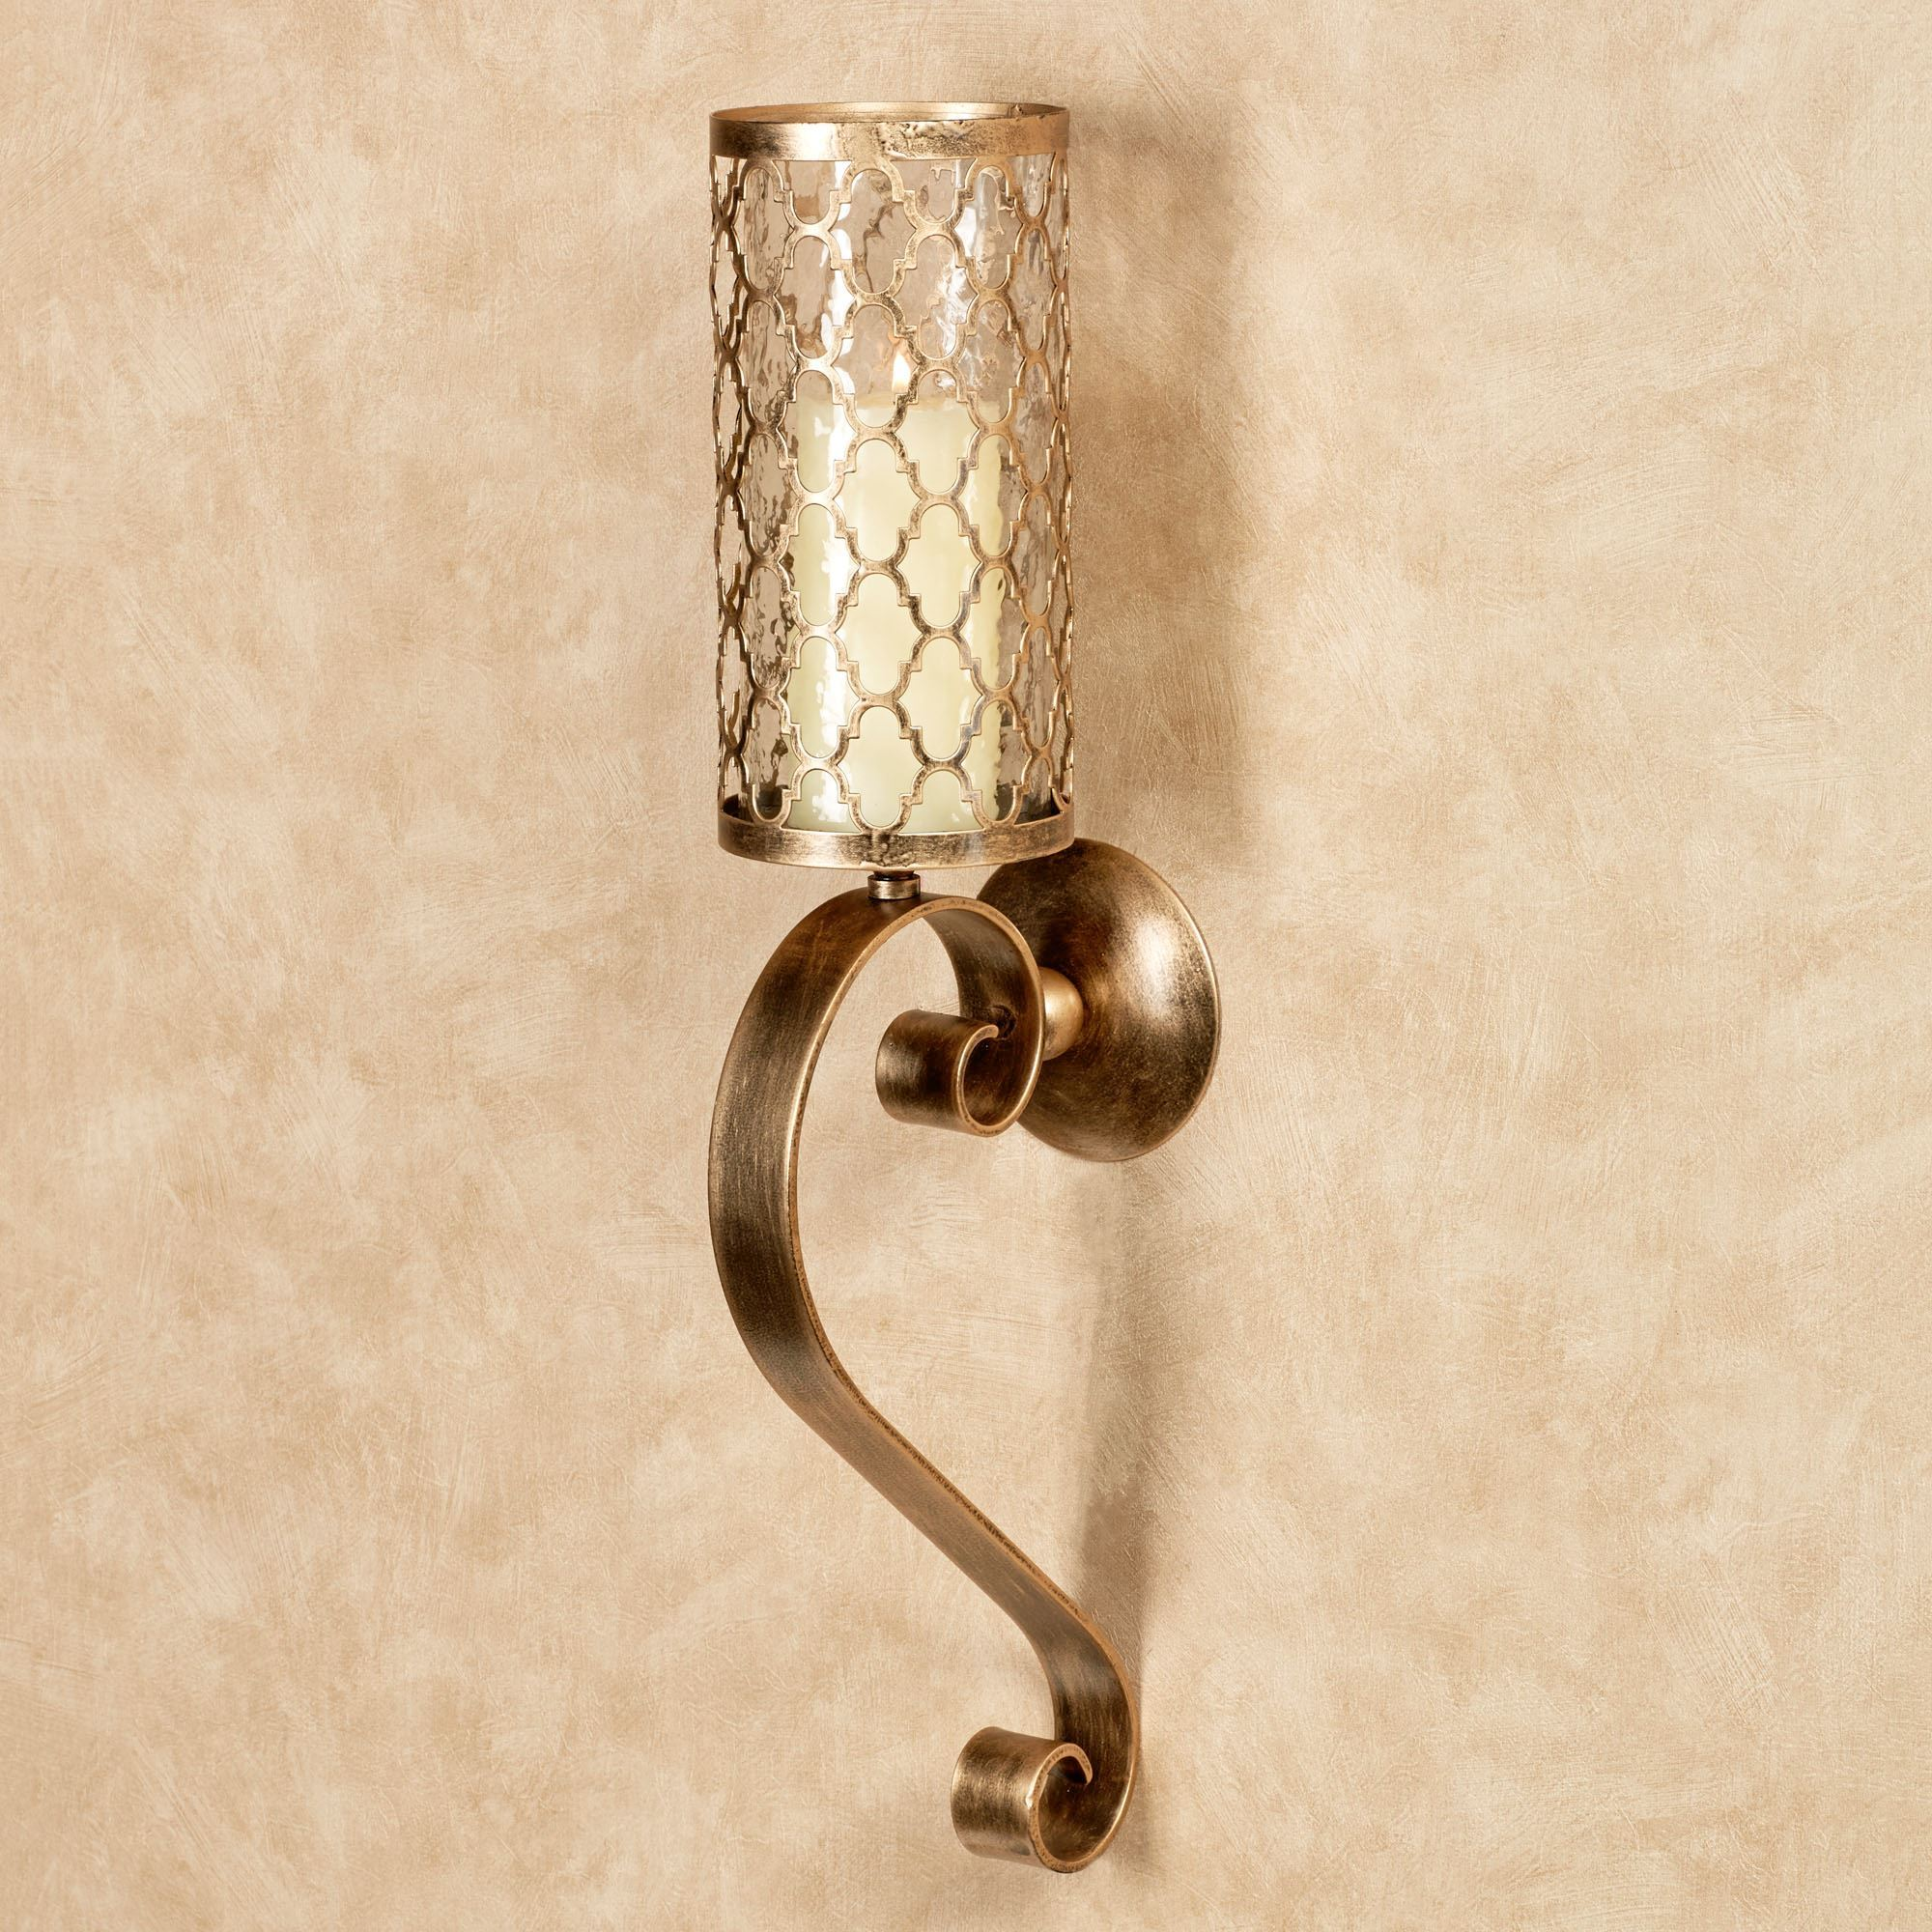 wall lights shipping today product gold antique in free overstock boudreaux home light garden matte elk sconce and black